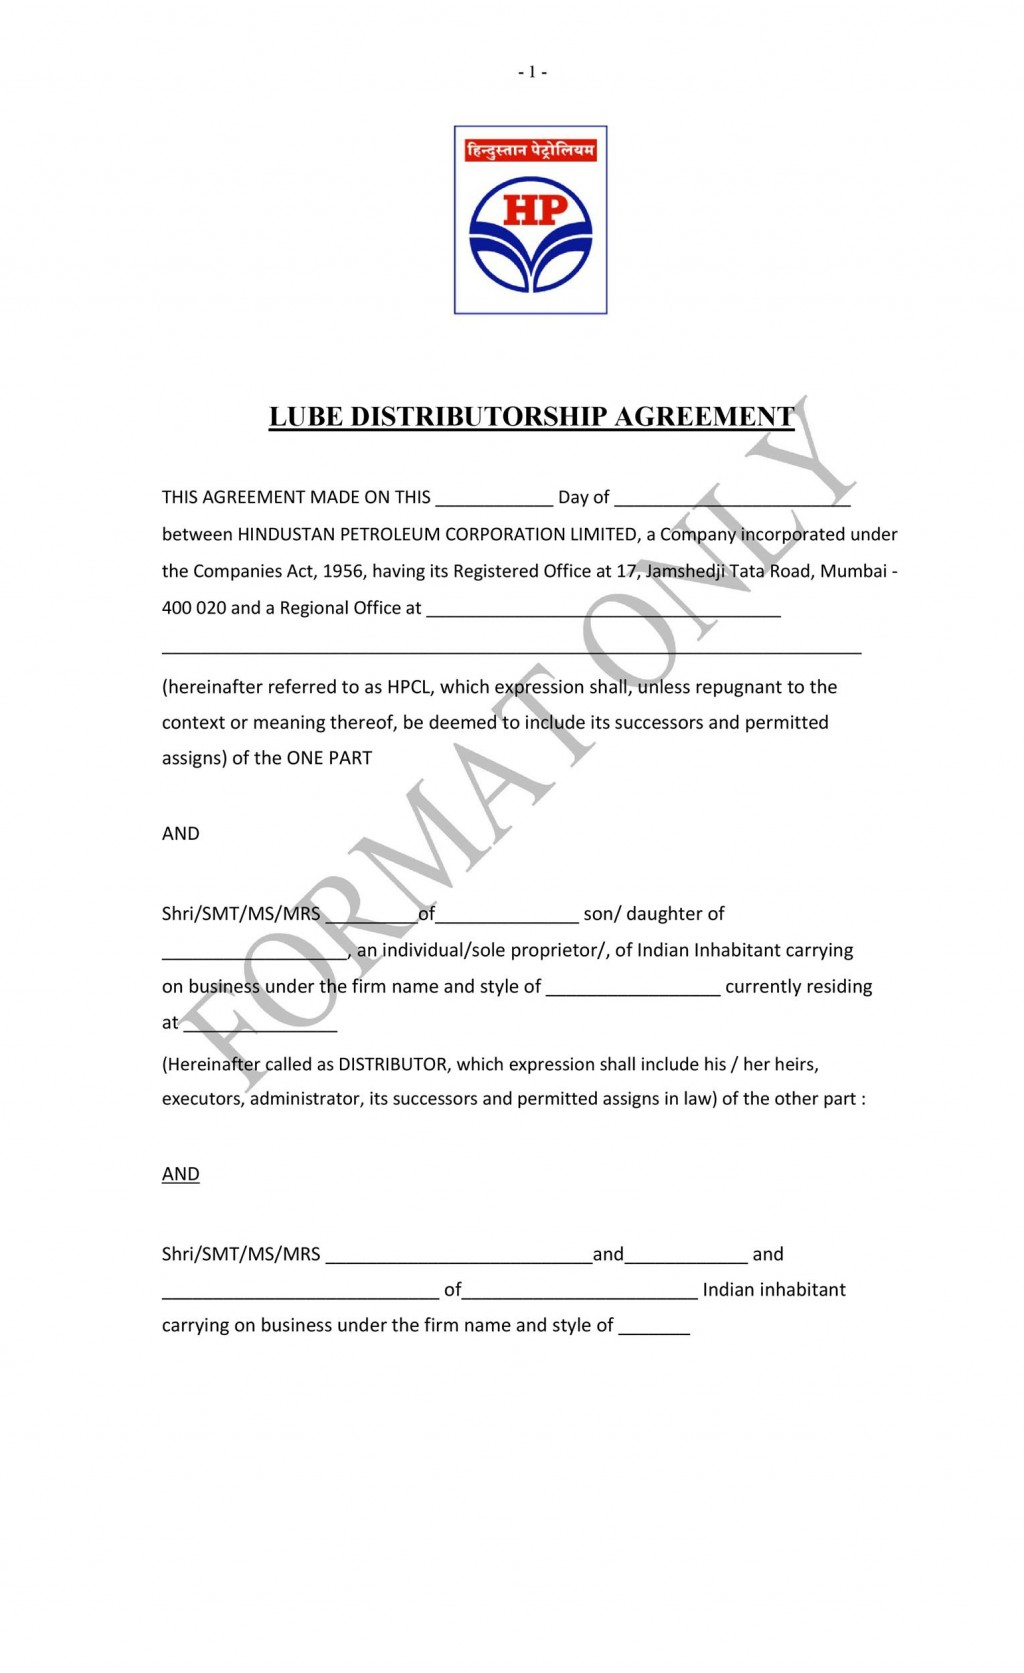 009 Awful Exclusive Distribution Agreement Template Free Download Inspiration Large